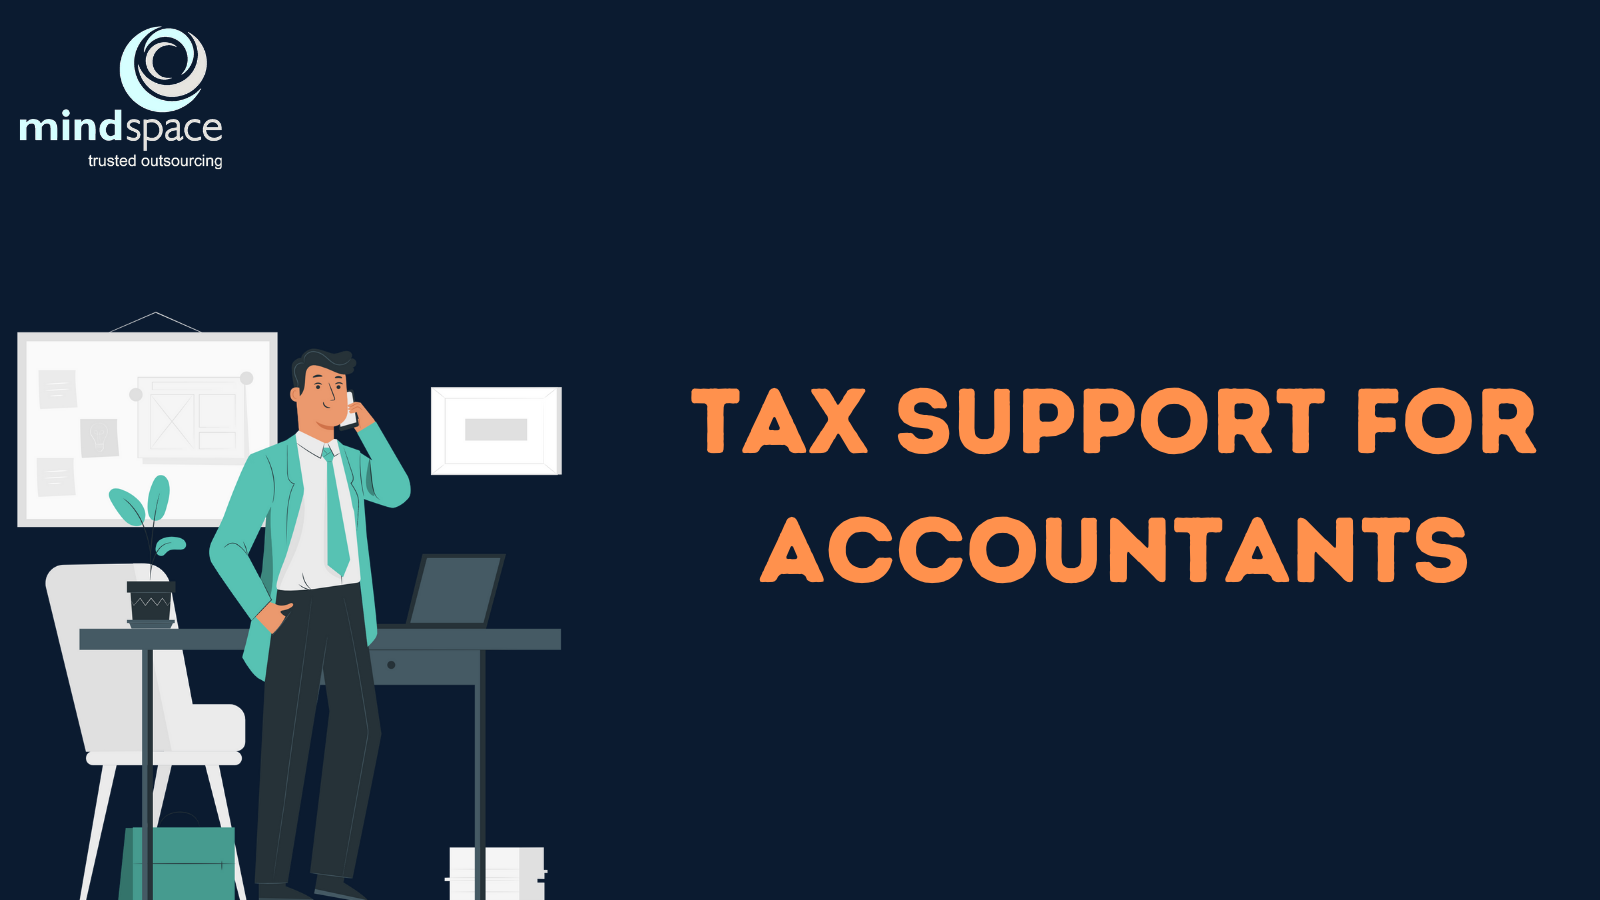 Accounts outsourcing, bookkeeping outsourcing services, outsourcing bookkeeping services, bank reconciliation services, outsourced accounting services UK, outsourced bookkeeping rates UK, outsourcing for accounting firms, outsourced accounting services, online accounting services, outsource accounting, accounting and bookkeeping outsourcing, outsourced bookkeeping rates UK